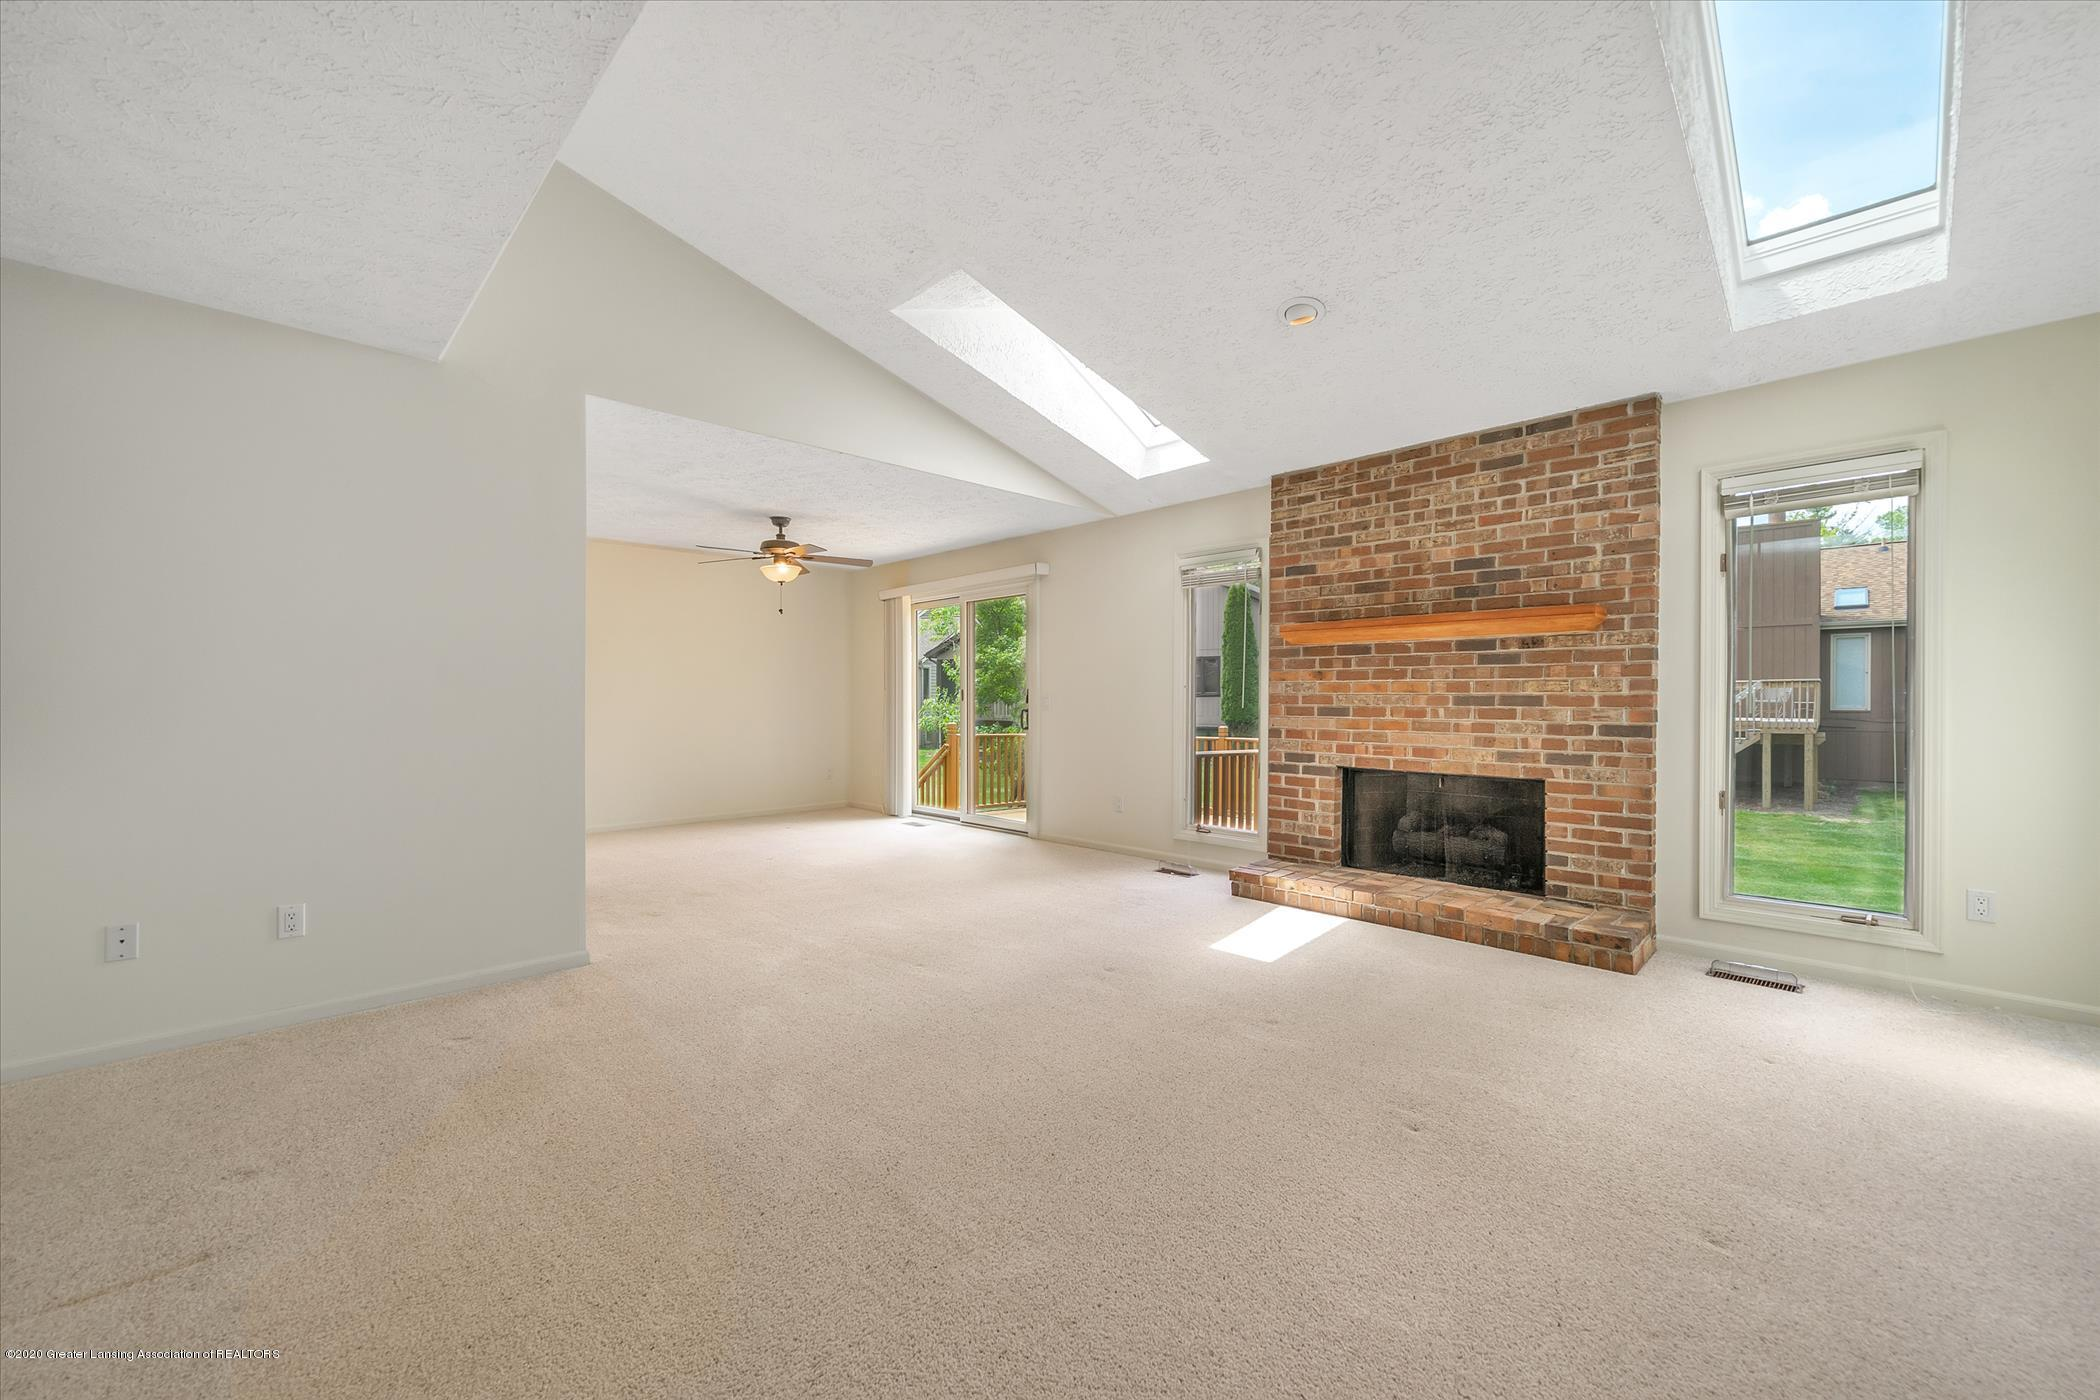 2605 Woodhill Dr - Greatroom with Vaulted Ceiling - 4